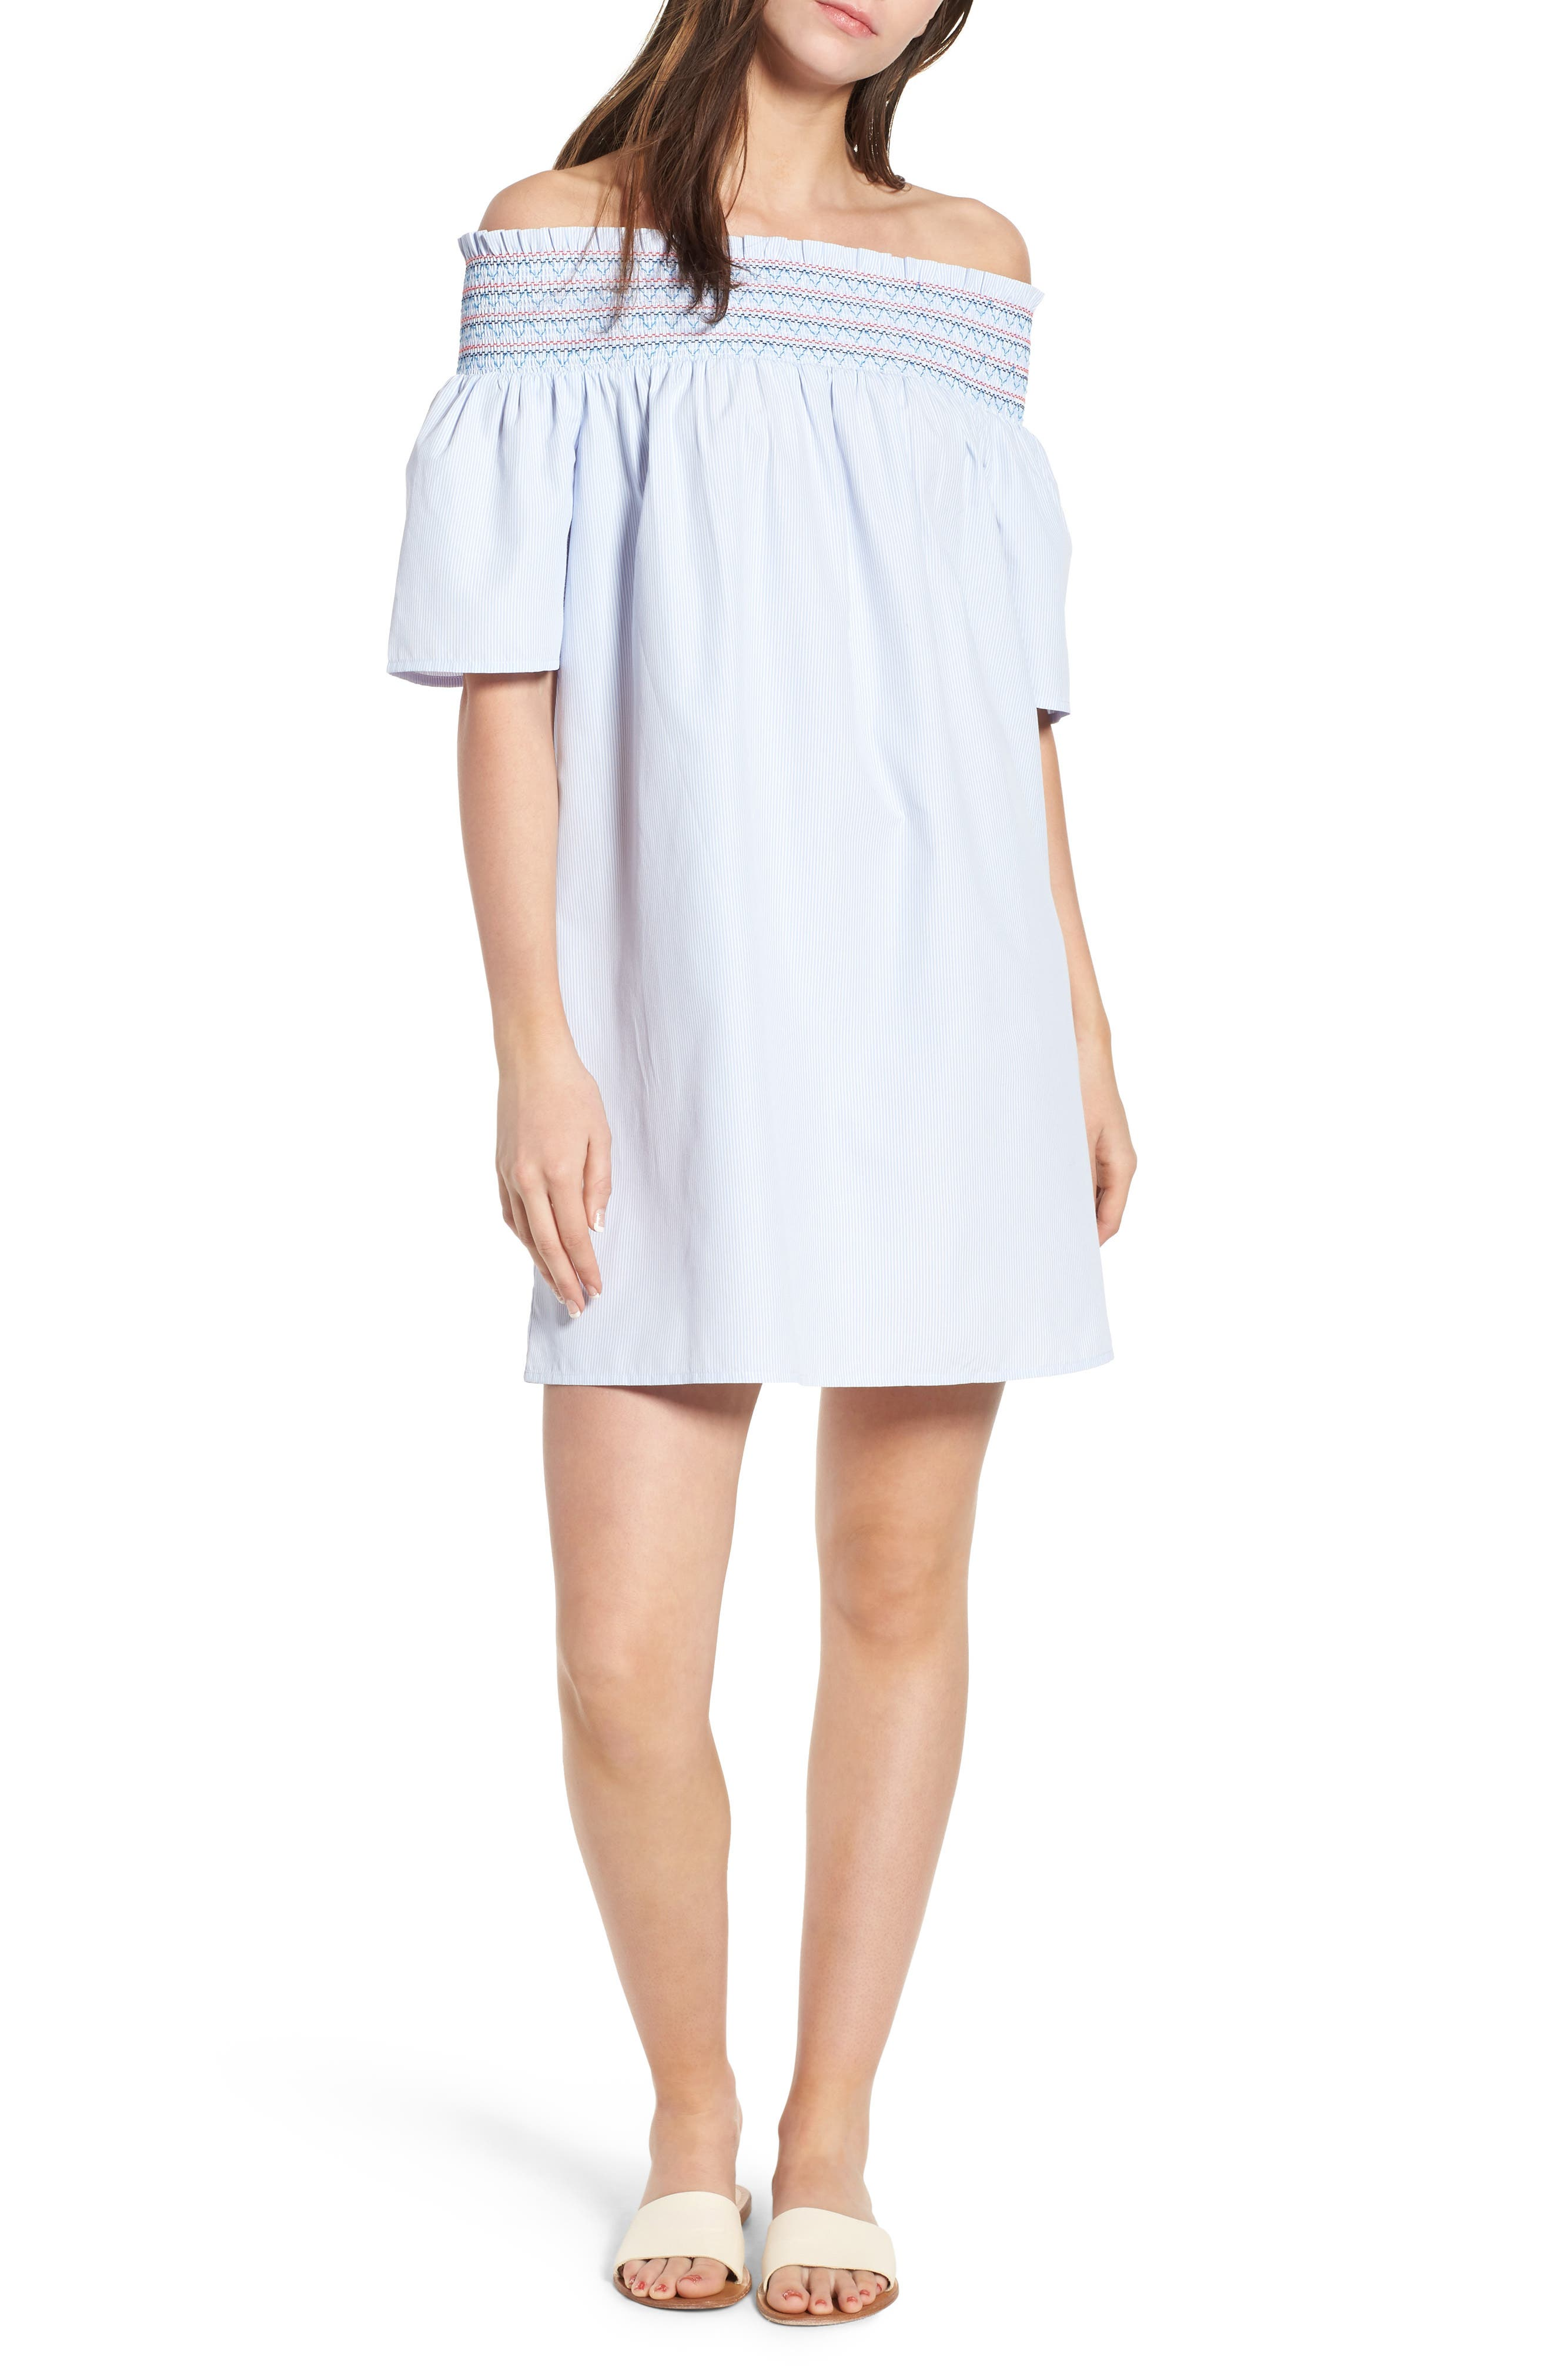 Smocked Off the Shoulder Dress,                             Main thumbnail 1, color,                             Bright White / Serenity